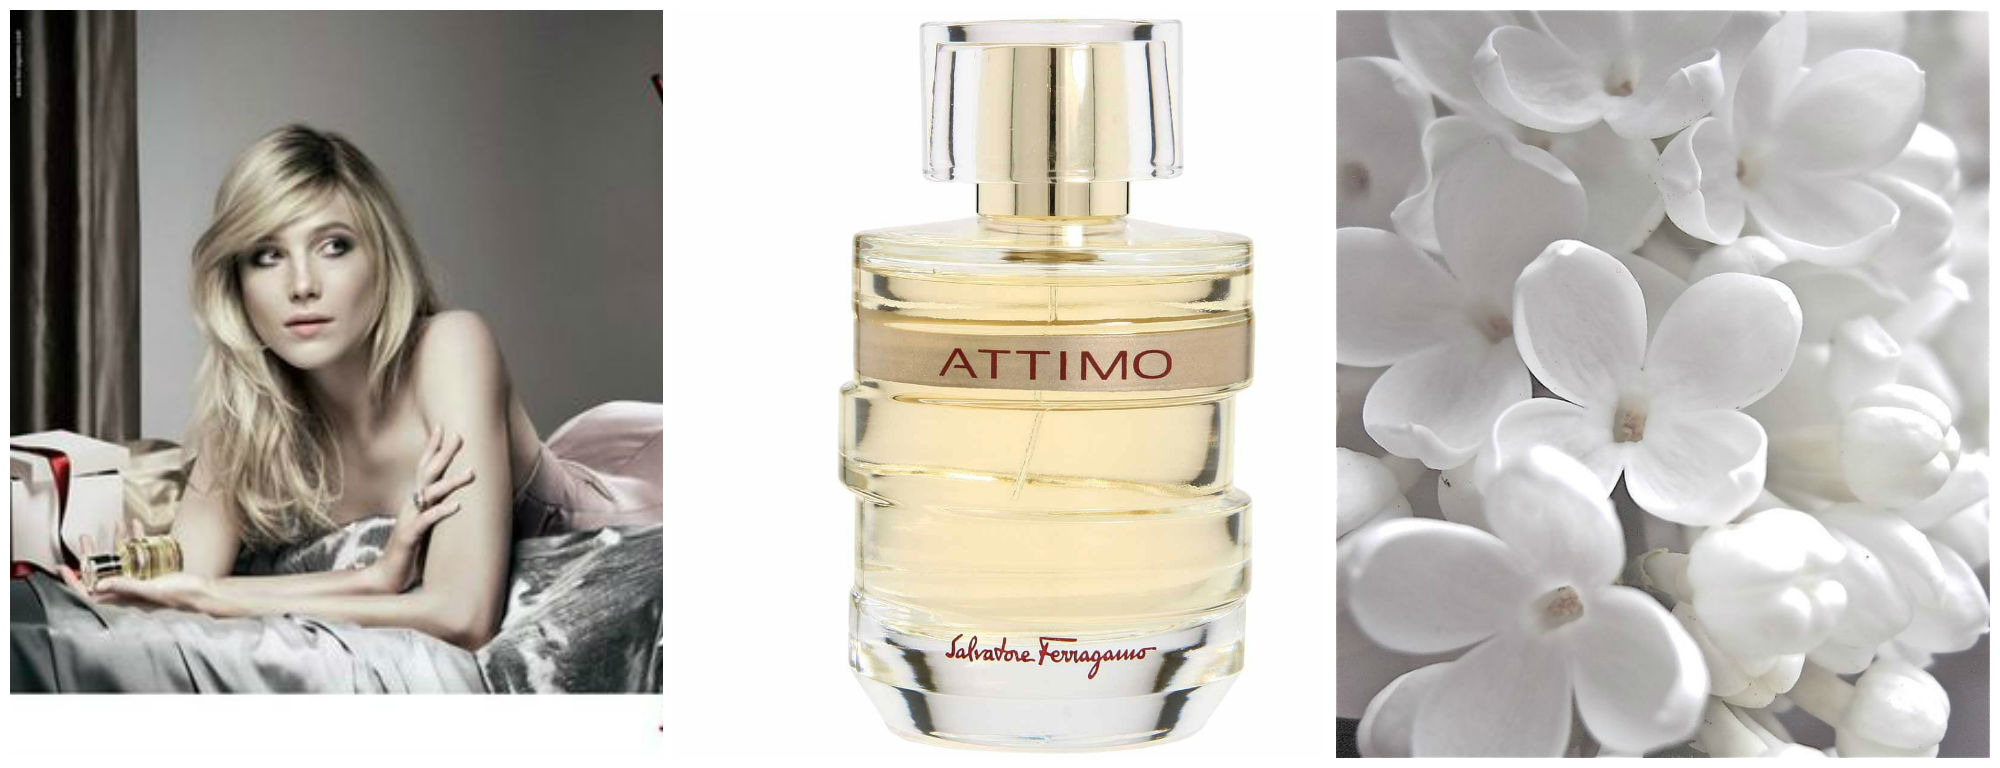 Perfume of the Day: Salvatore Ferragamo Attimo